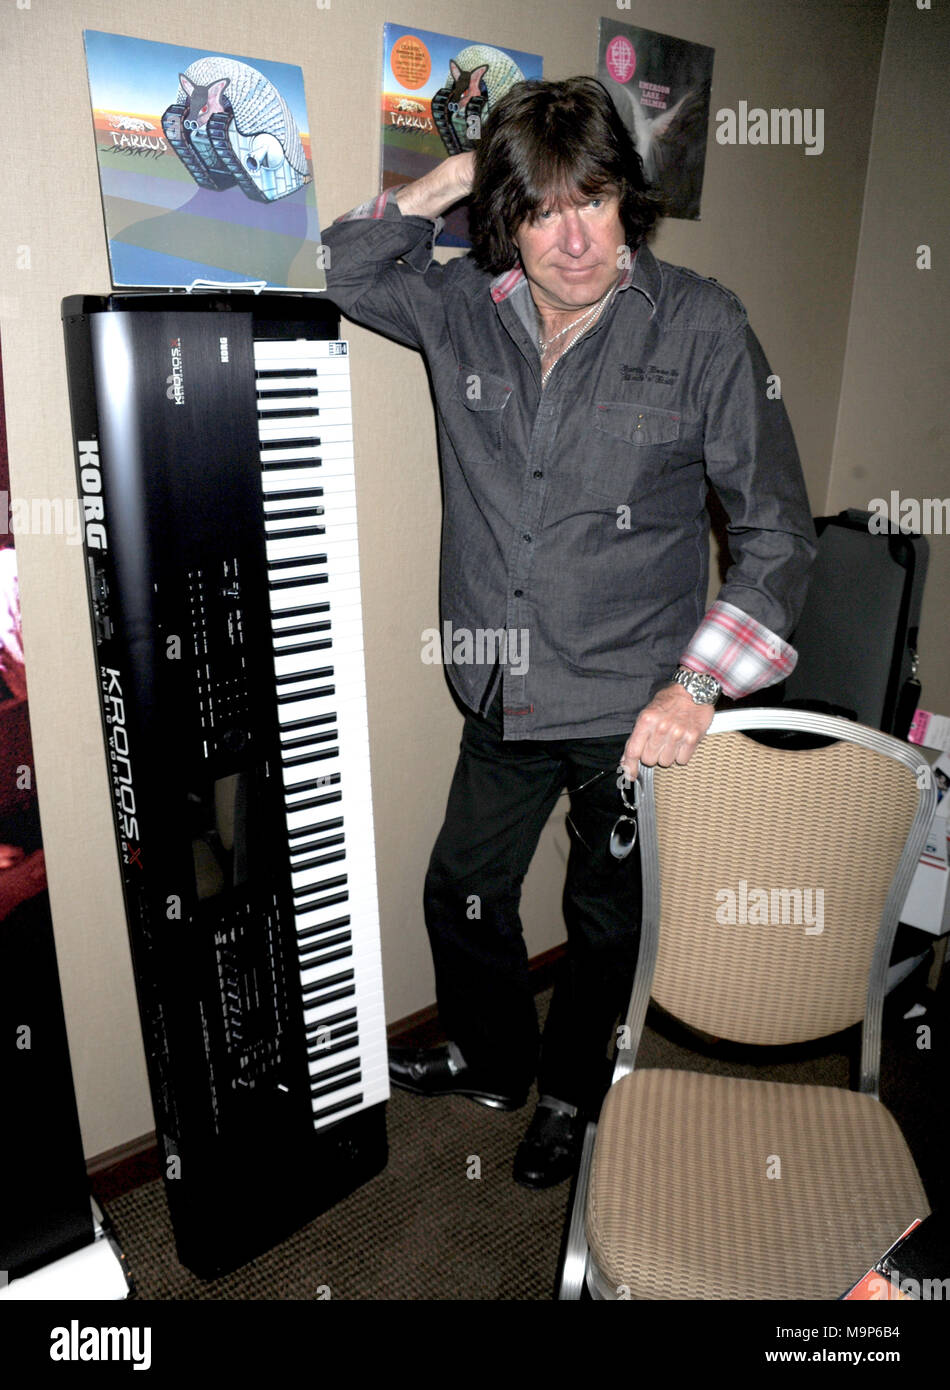 NEW YORK, NY - 2012: Keith Emerson, the flamboyant, English prog-rock pioneer who rose to fame as the keyboardist for supergroup Emerson, Lake & Palmer in the Õ70s, died in Santa Monica, Calif. on Thursday at age 71.Orig Pix taken on 2012 in New York City  People:  Keith Emerson - Stock Image